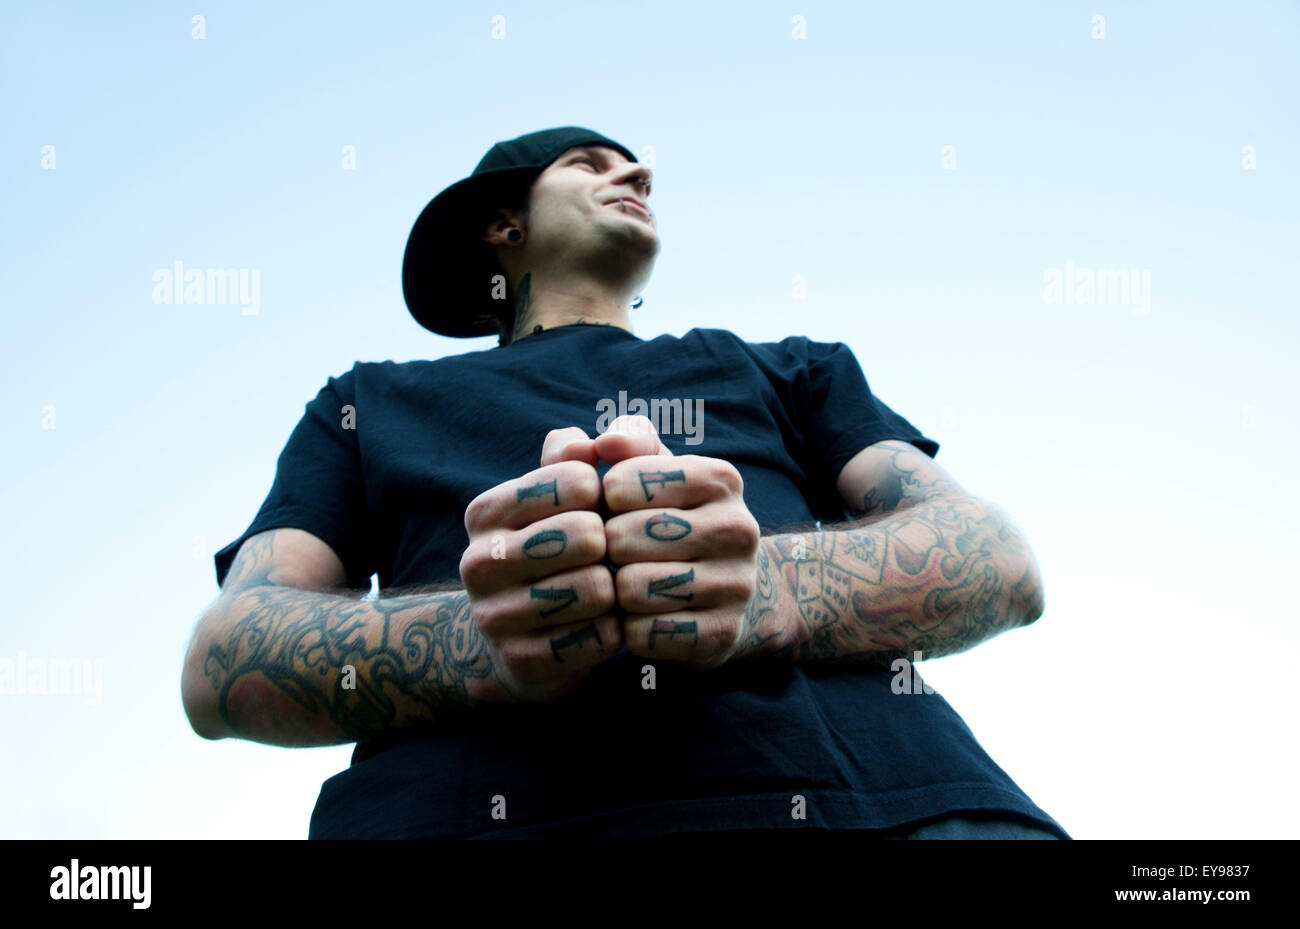 Band member with love tattoos - Stock Image